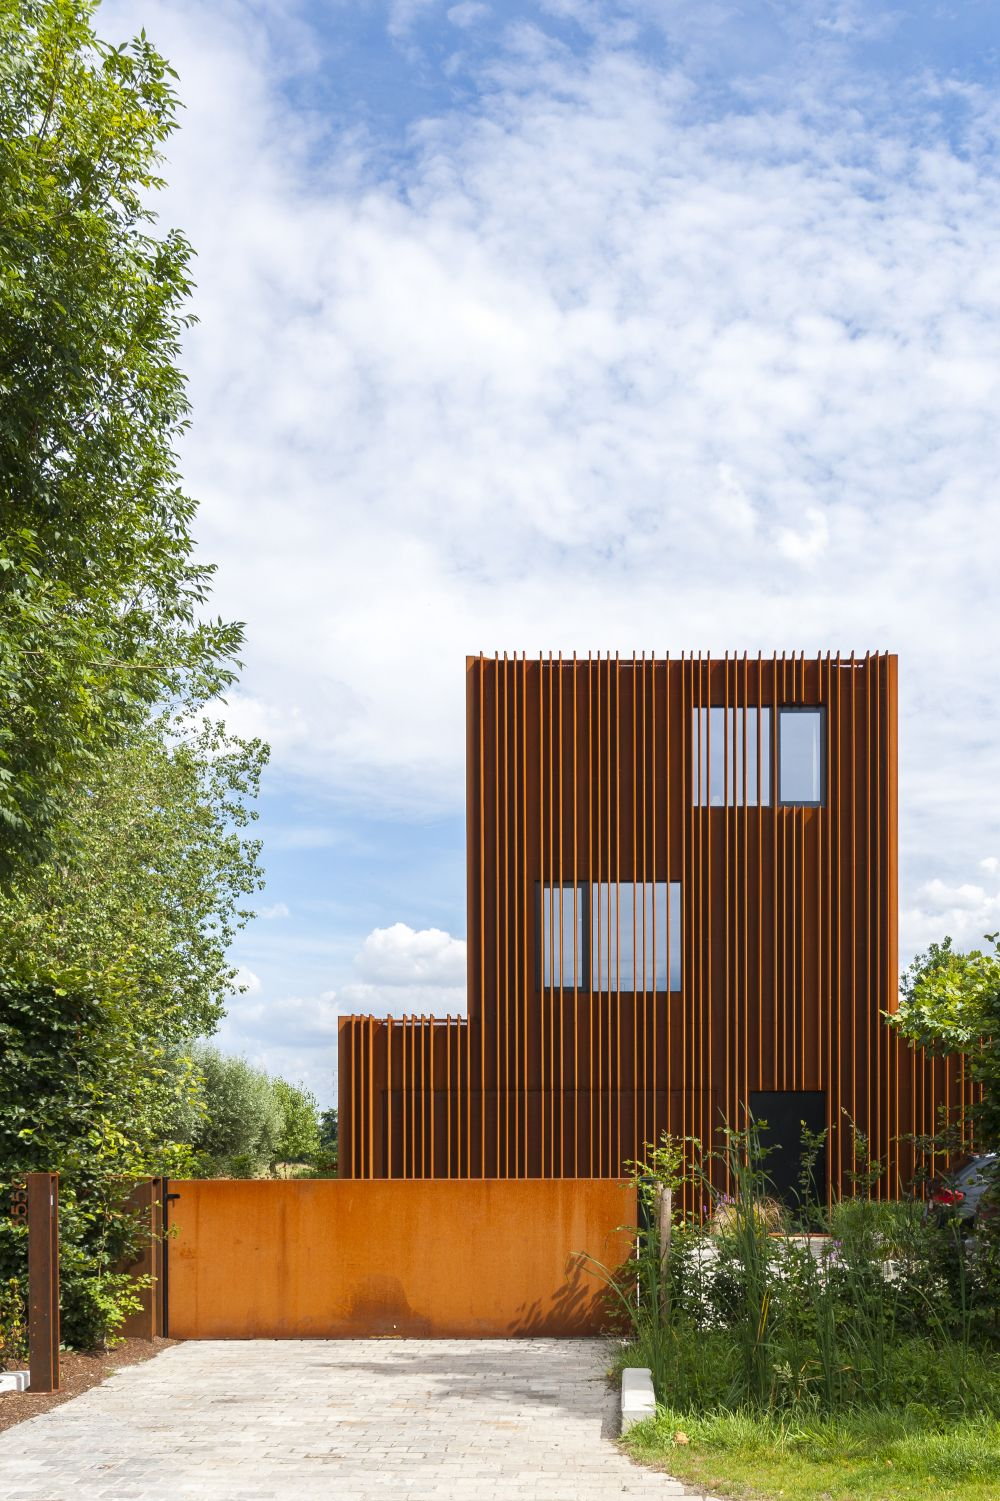 Design The Corten House by DMOA Architecten